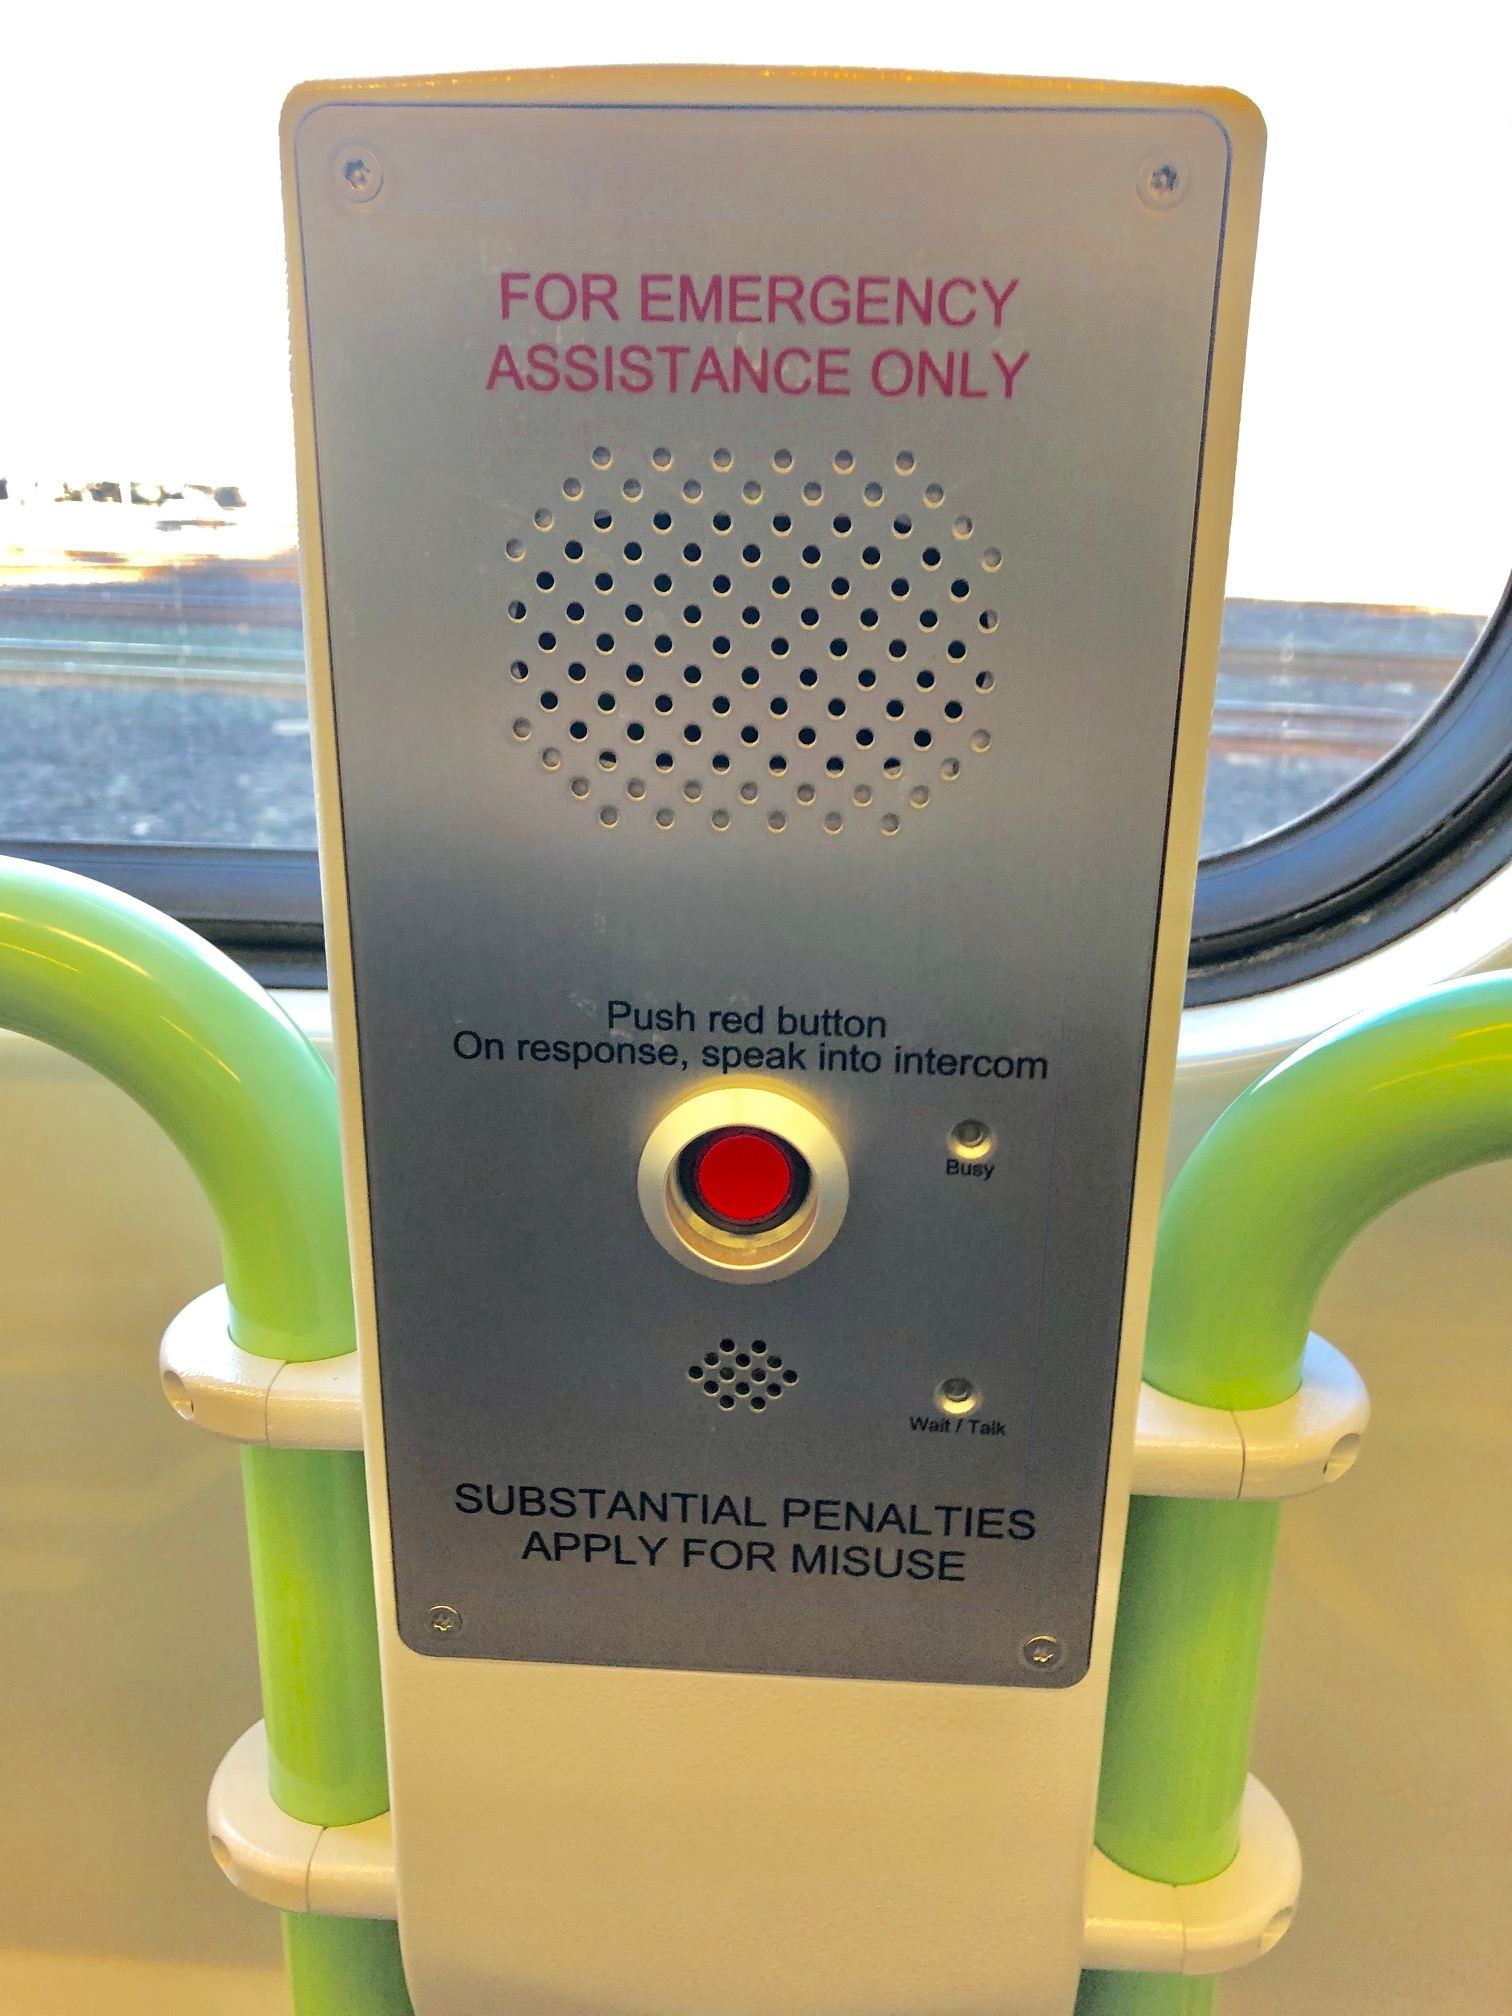 photo of emergency assist intercom located in the train carriage